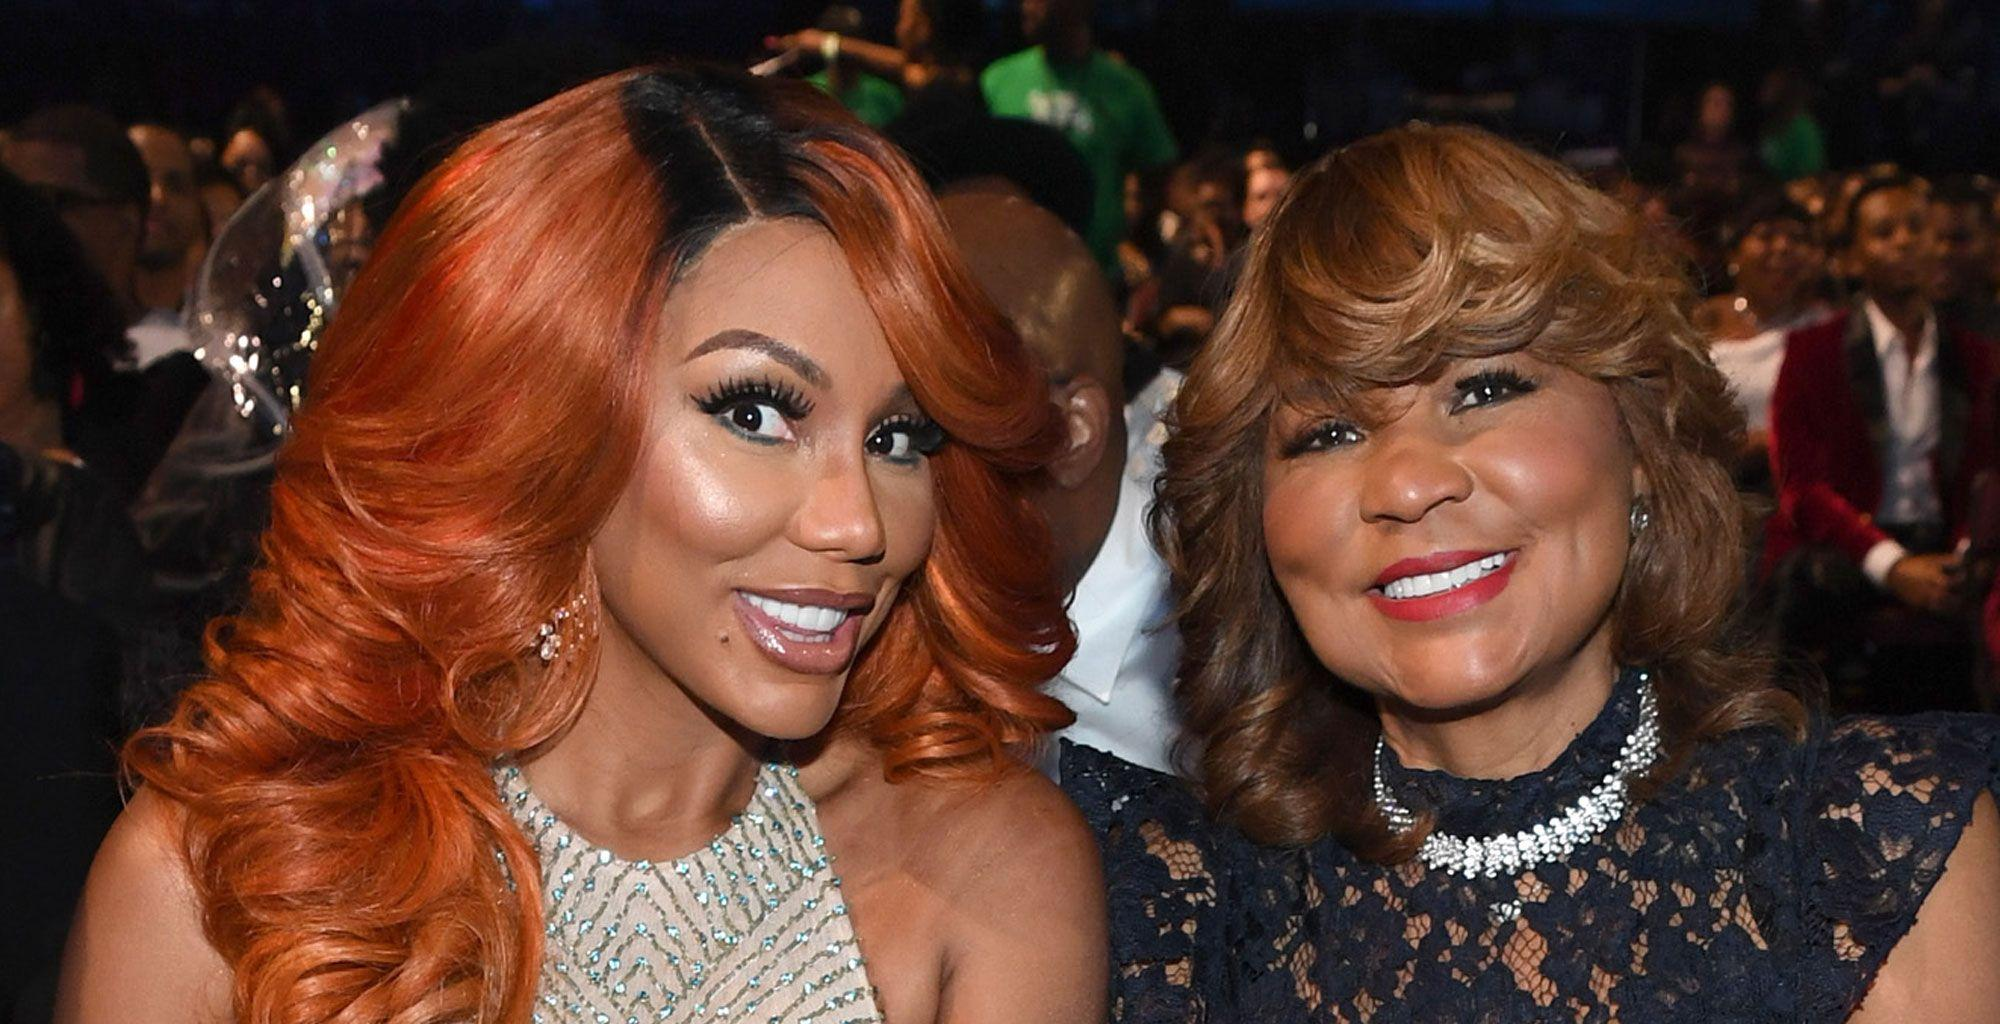 Tamar Braxton Celebrated The Birthday Of Her Mom - See The Clip